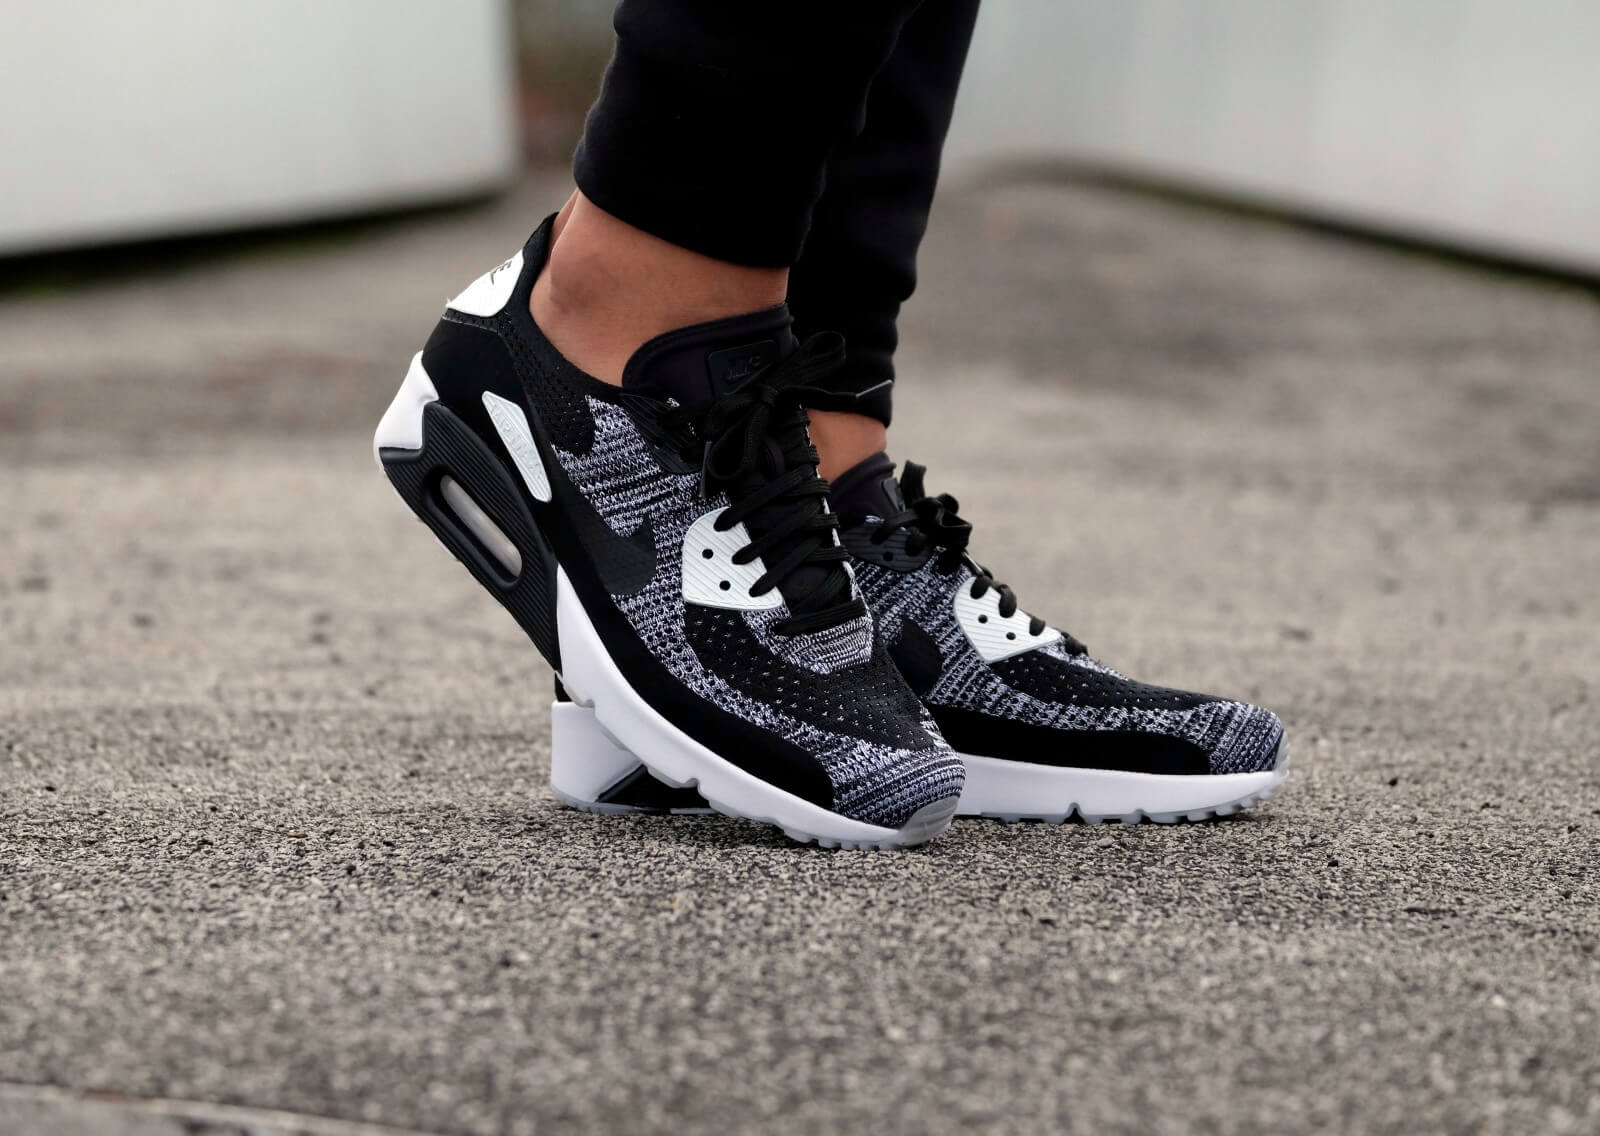 Nike Air Max 90 Ultra 2.0 Flyknit BlackBlack White 875943 001